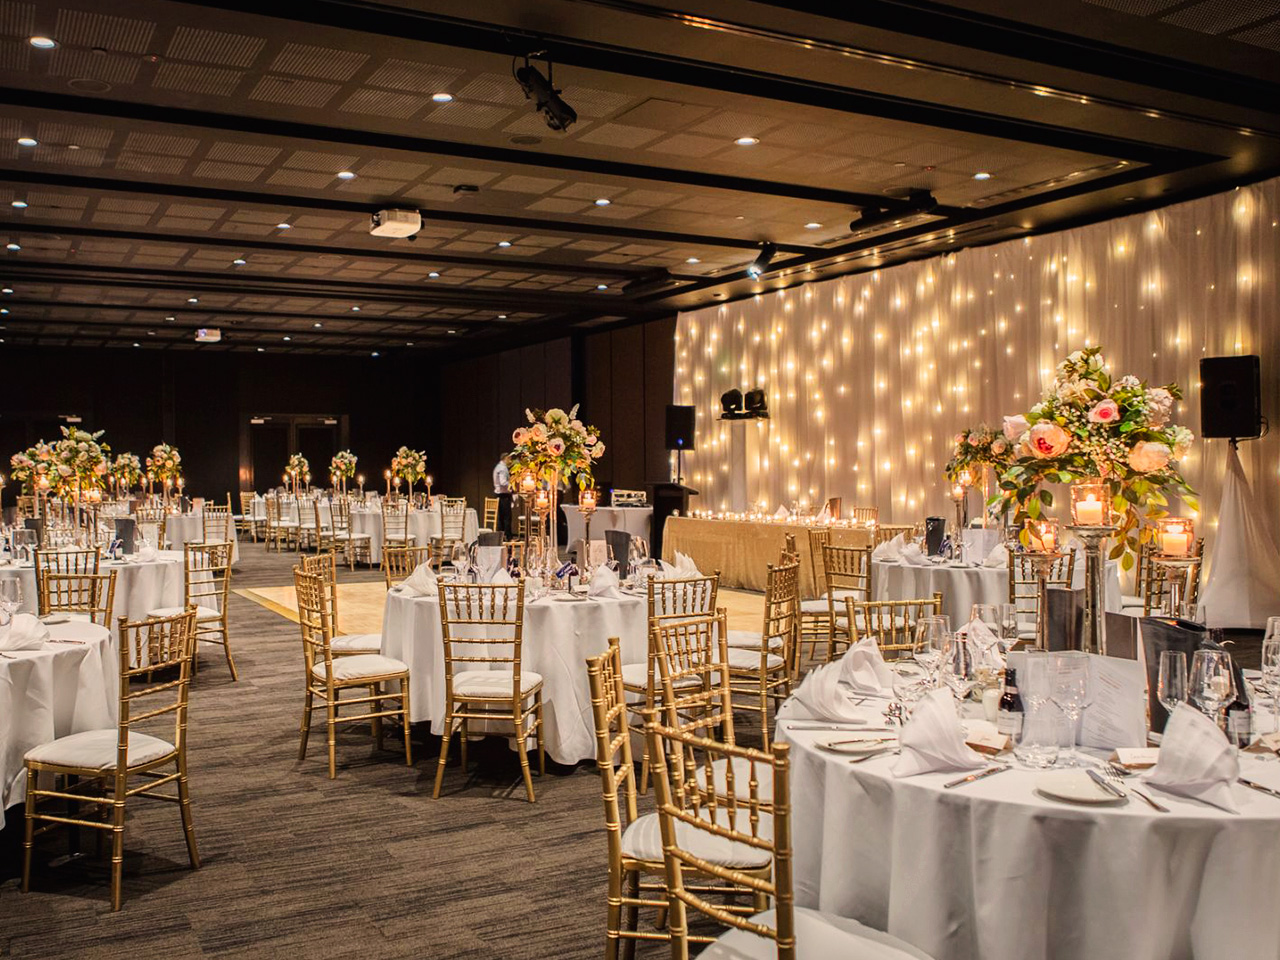 Tables And Chairs In Banquet Style With Flower Centerpieces And String Lights On The Front